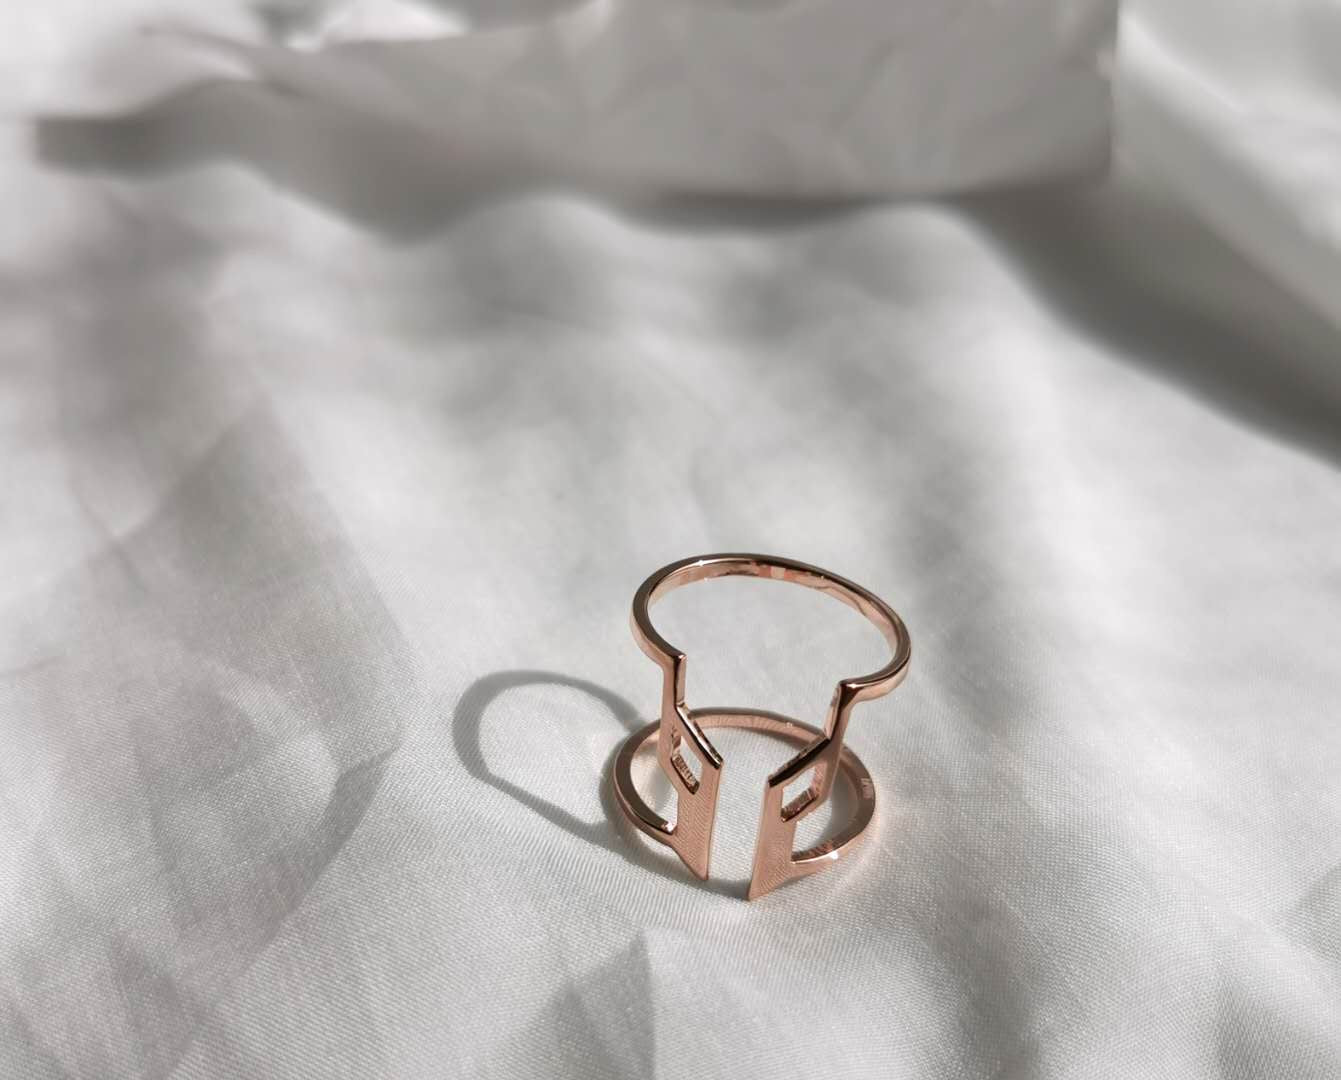 rosegold sustainable jewellery recycled rings cuffs bracelets ethical accessories women